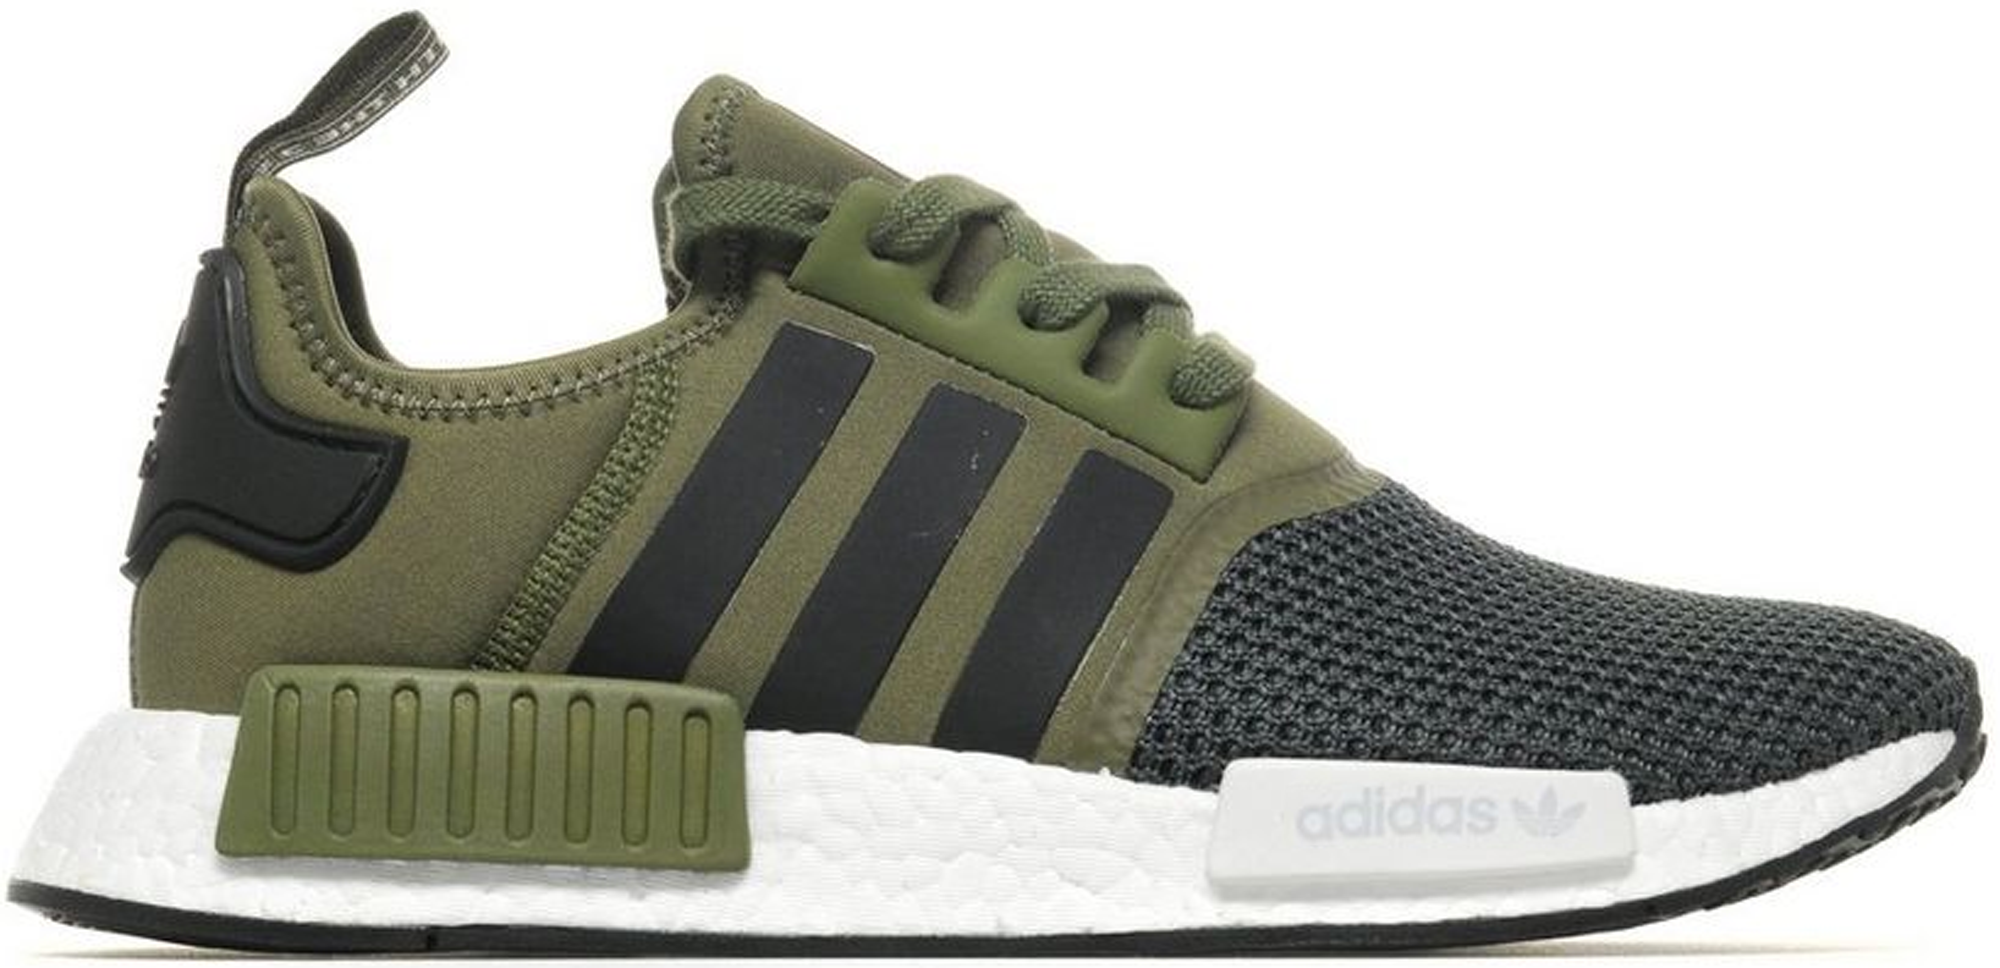 Nmd R1 Jd Sports Trace Olive In Trace Olivecargo Khakicore Black